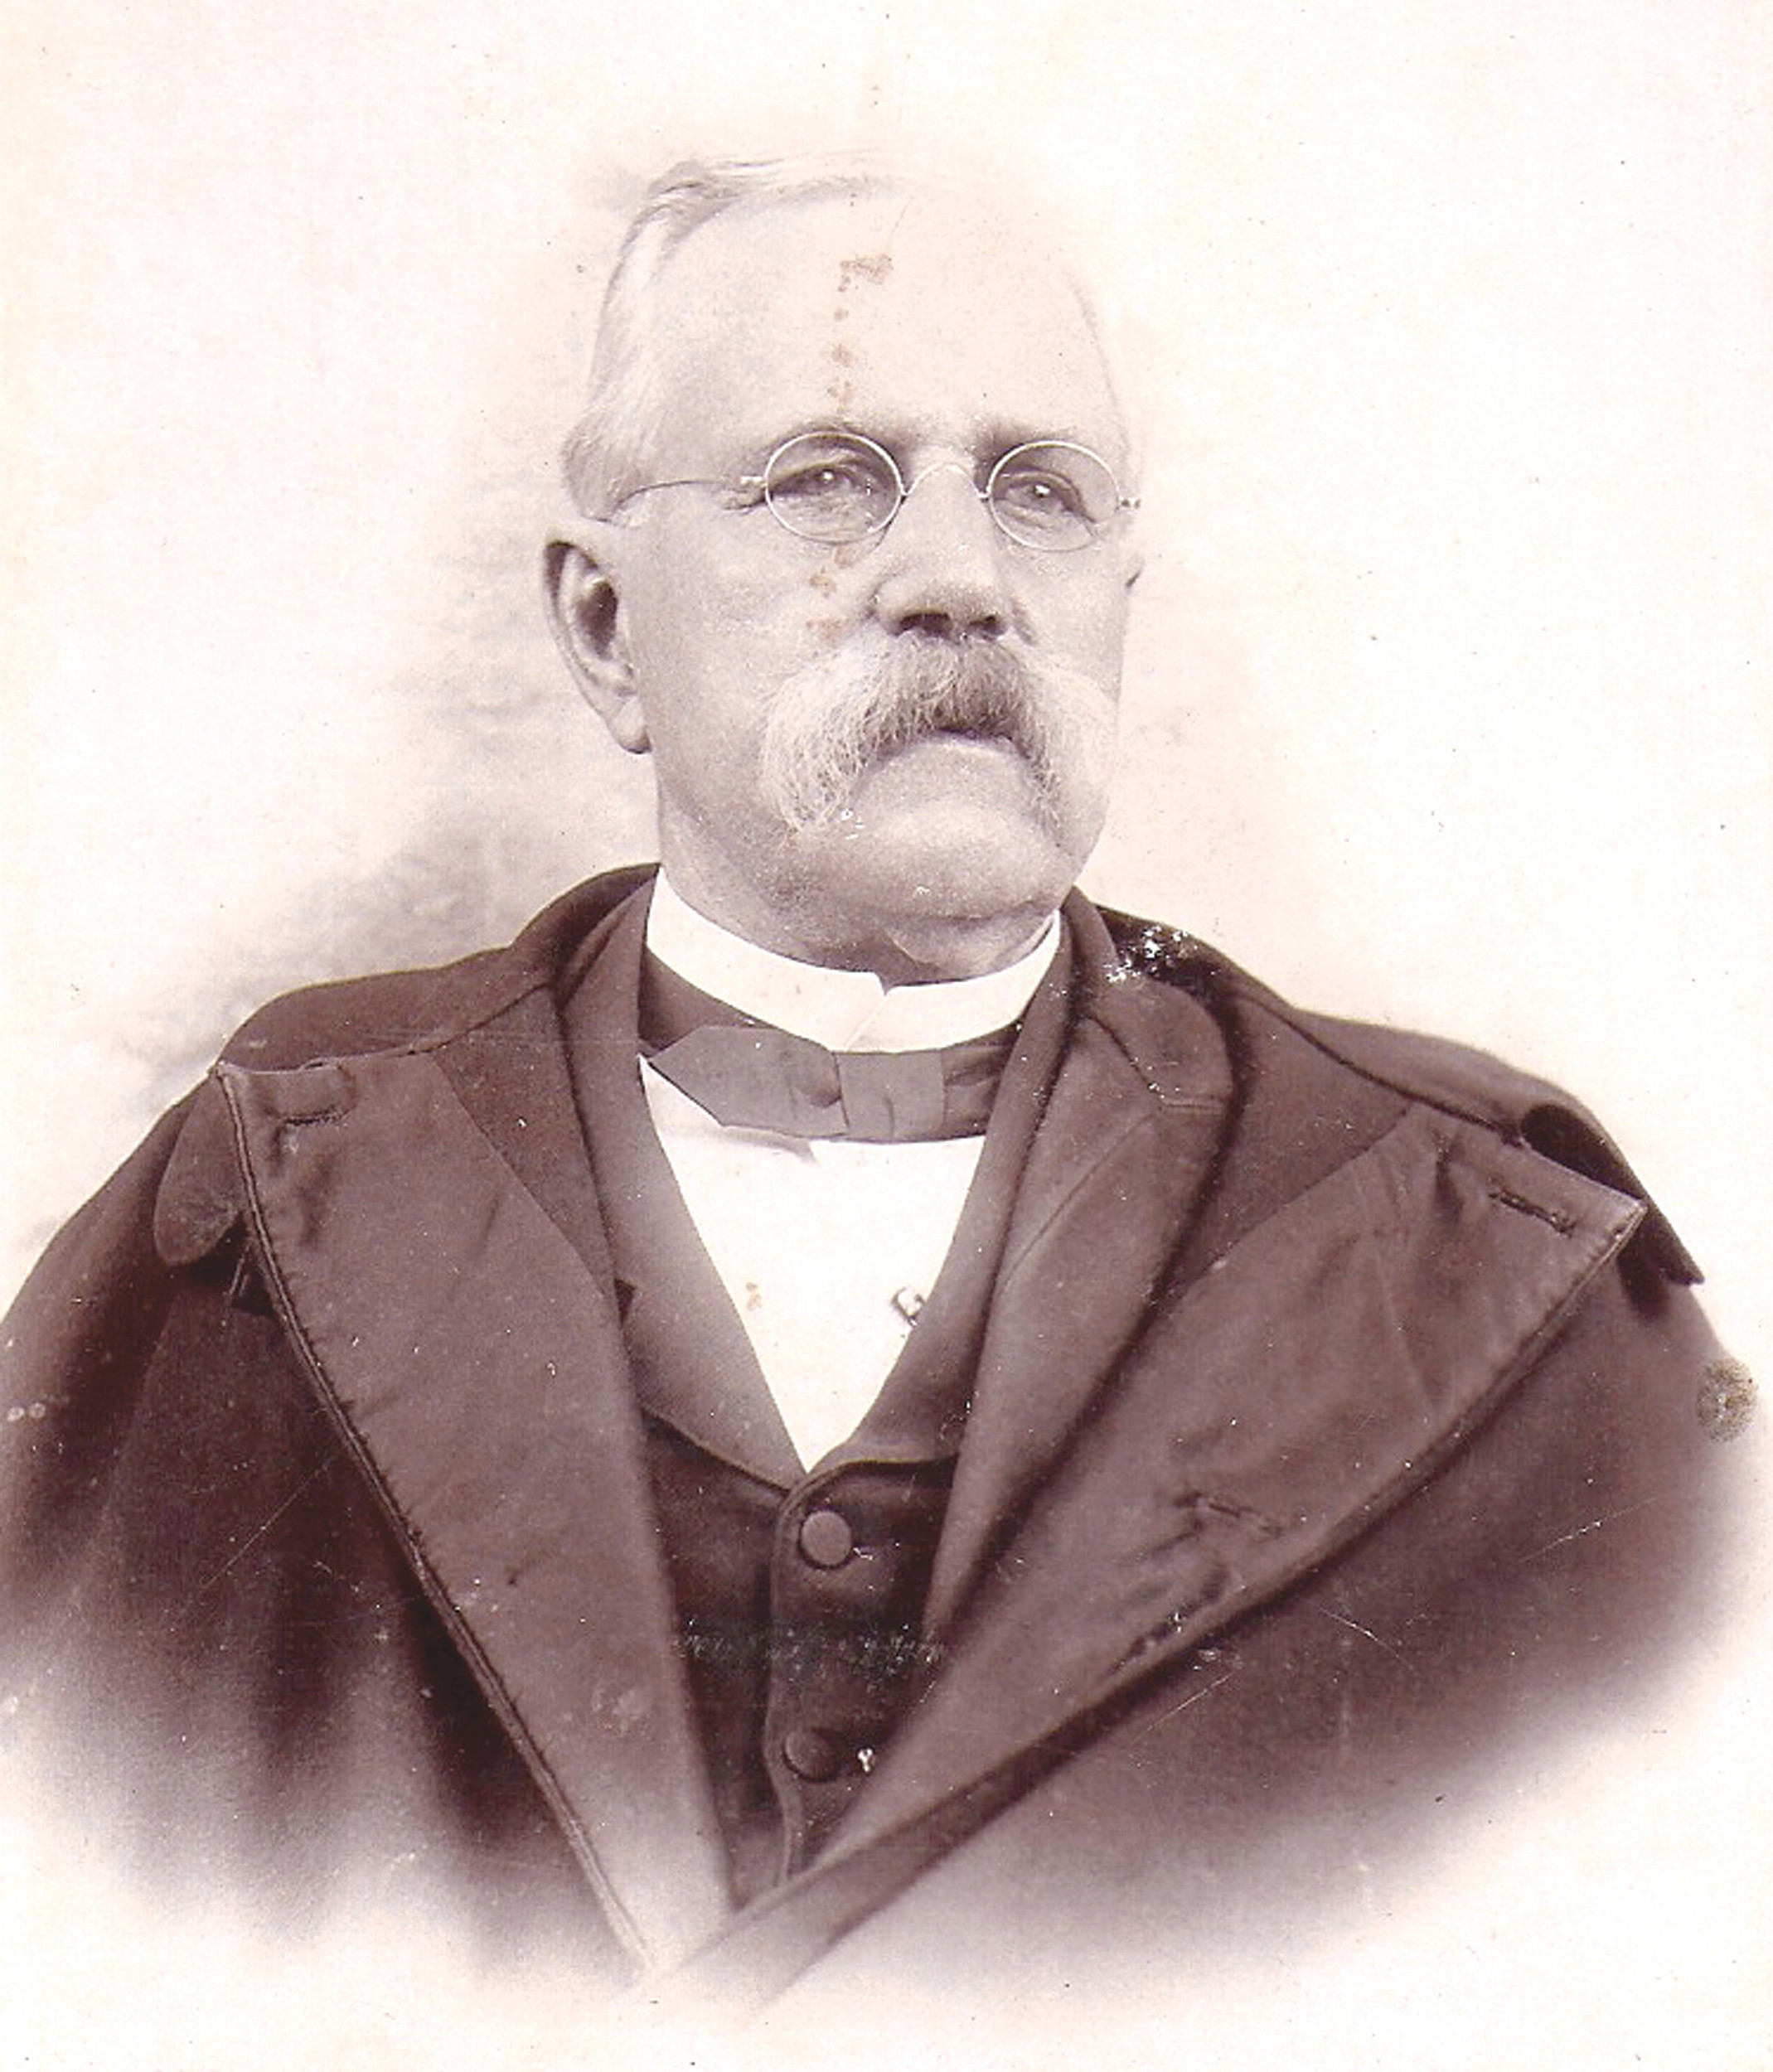 Dr. John J. Bossard, born in 1825, moved to Sumterville in 1832 and studied medicine with Dr. J.B. Witherspoon and later attended Medical College in Charleston. He returned to Sumter after graduating and opened his practice.